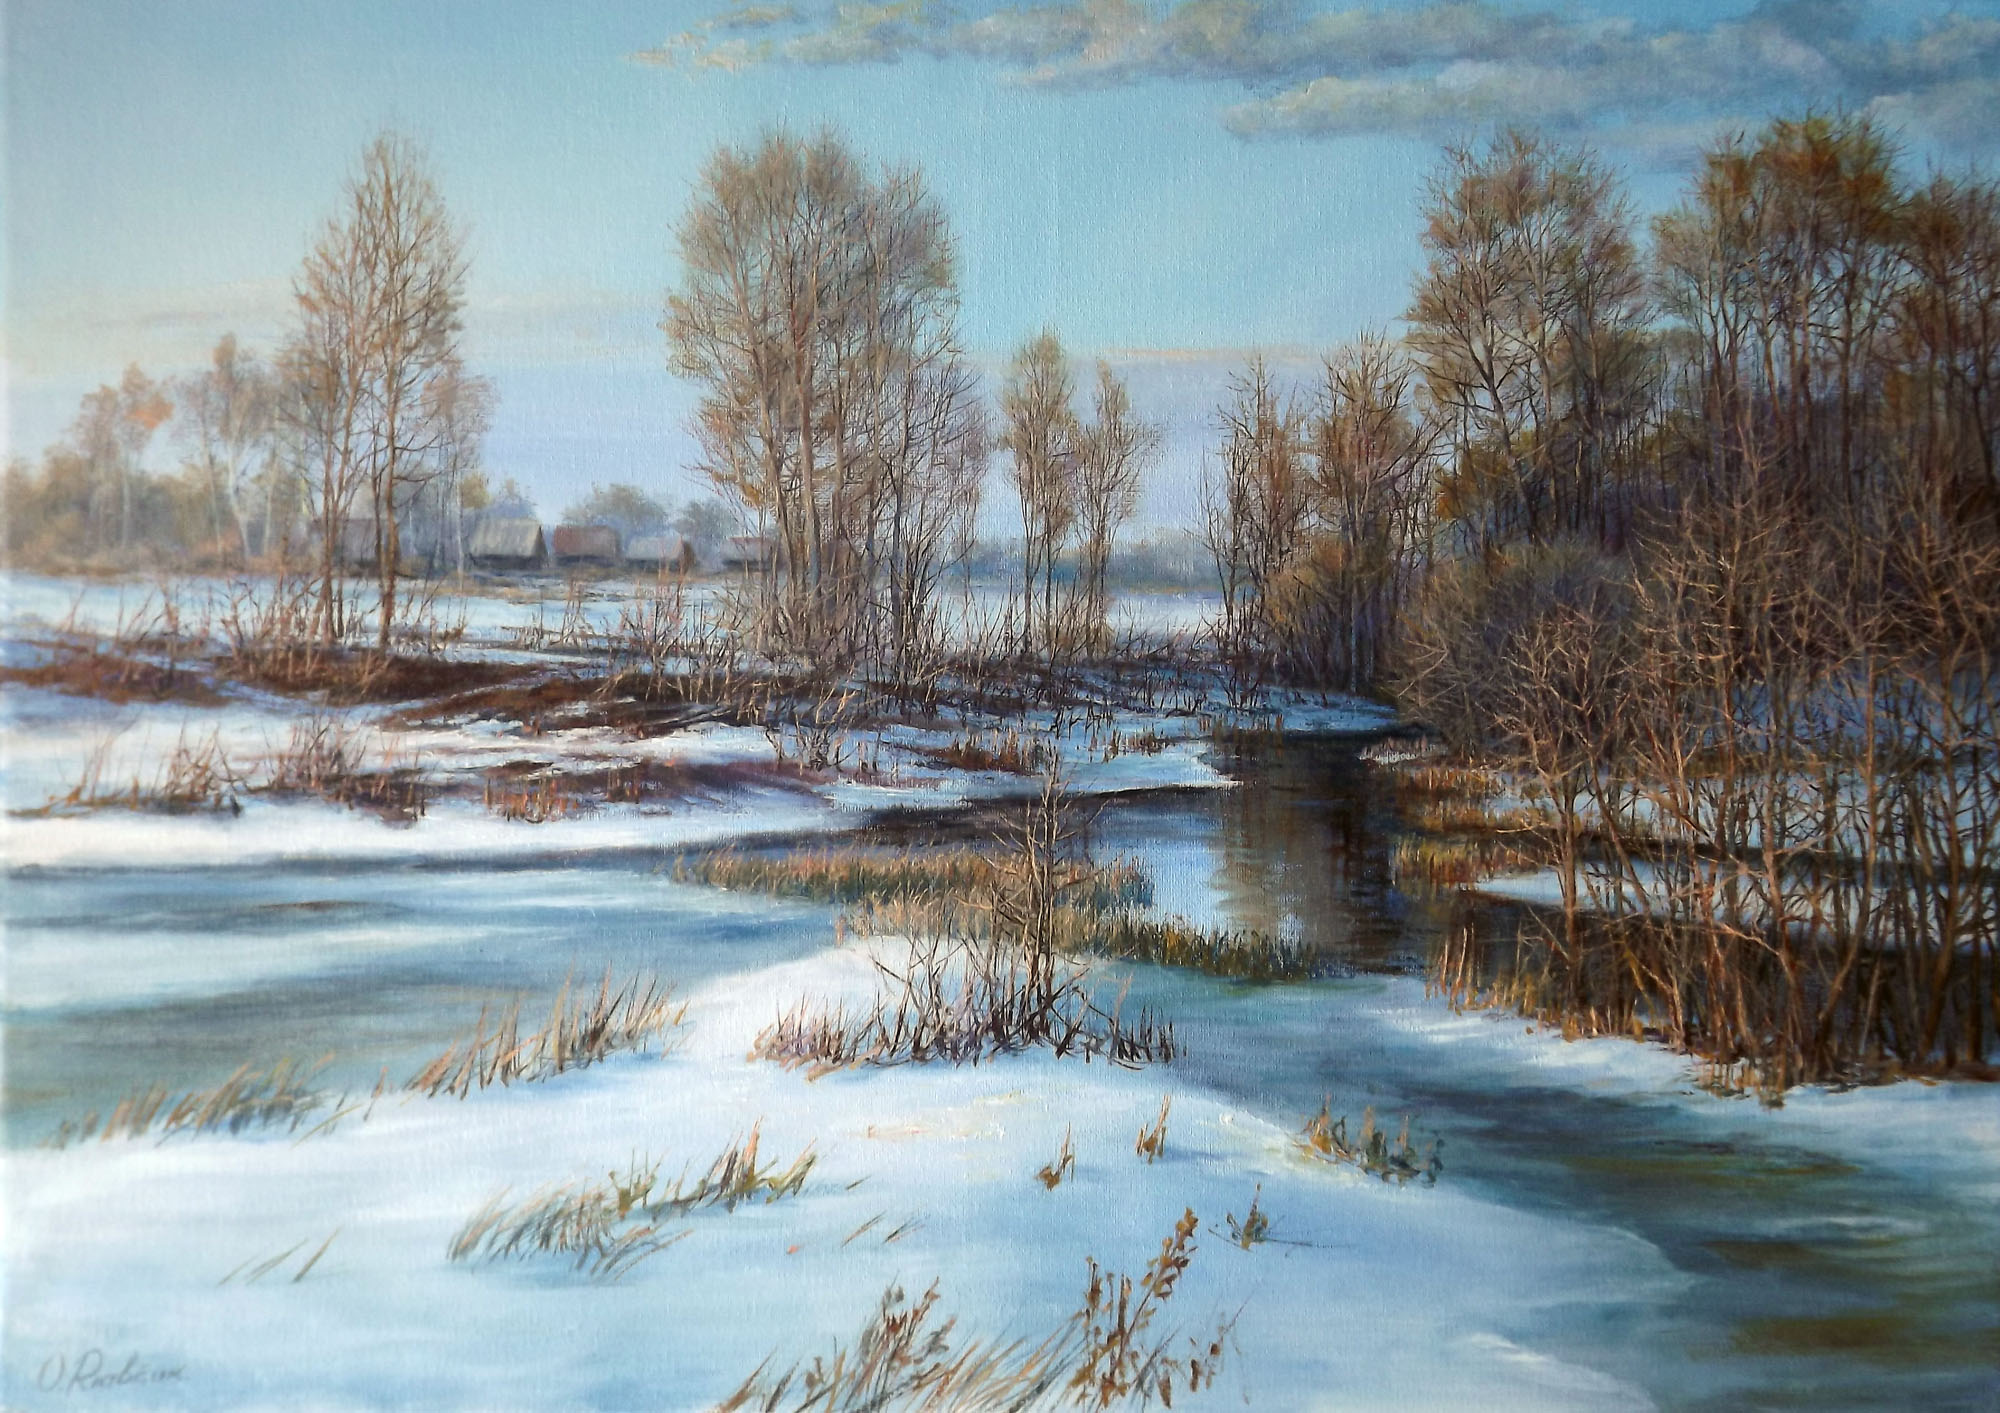 Winter Landscape **SOLD**